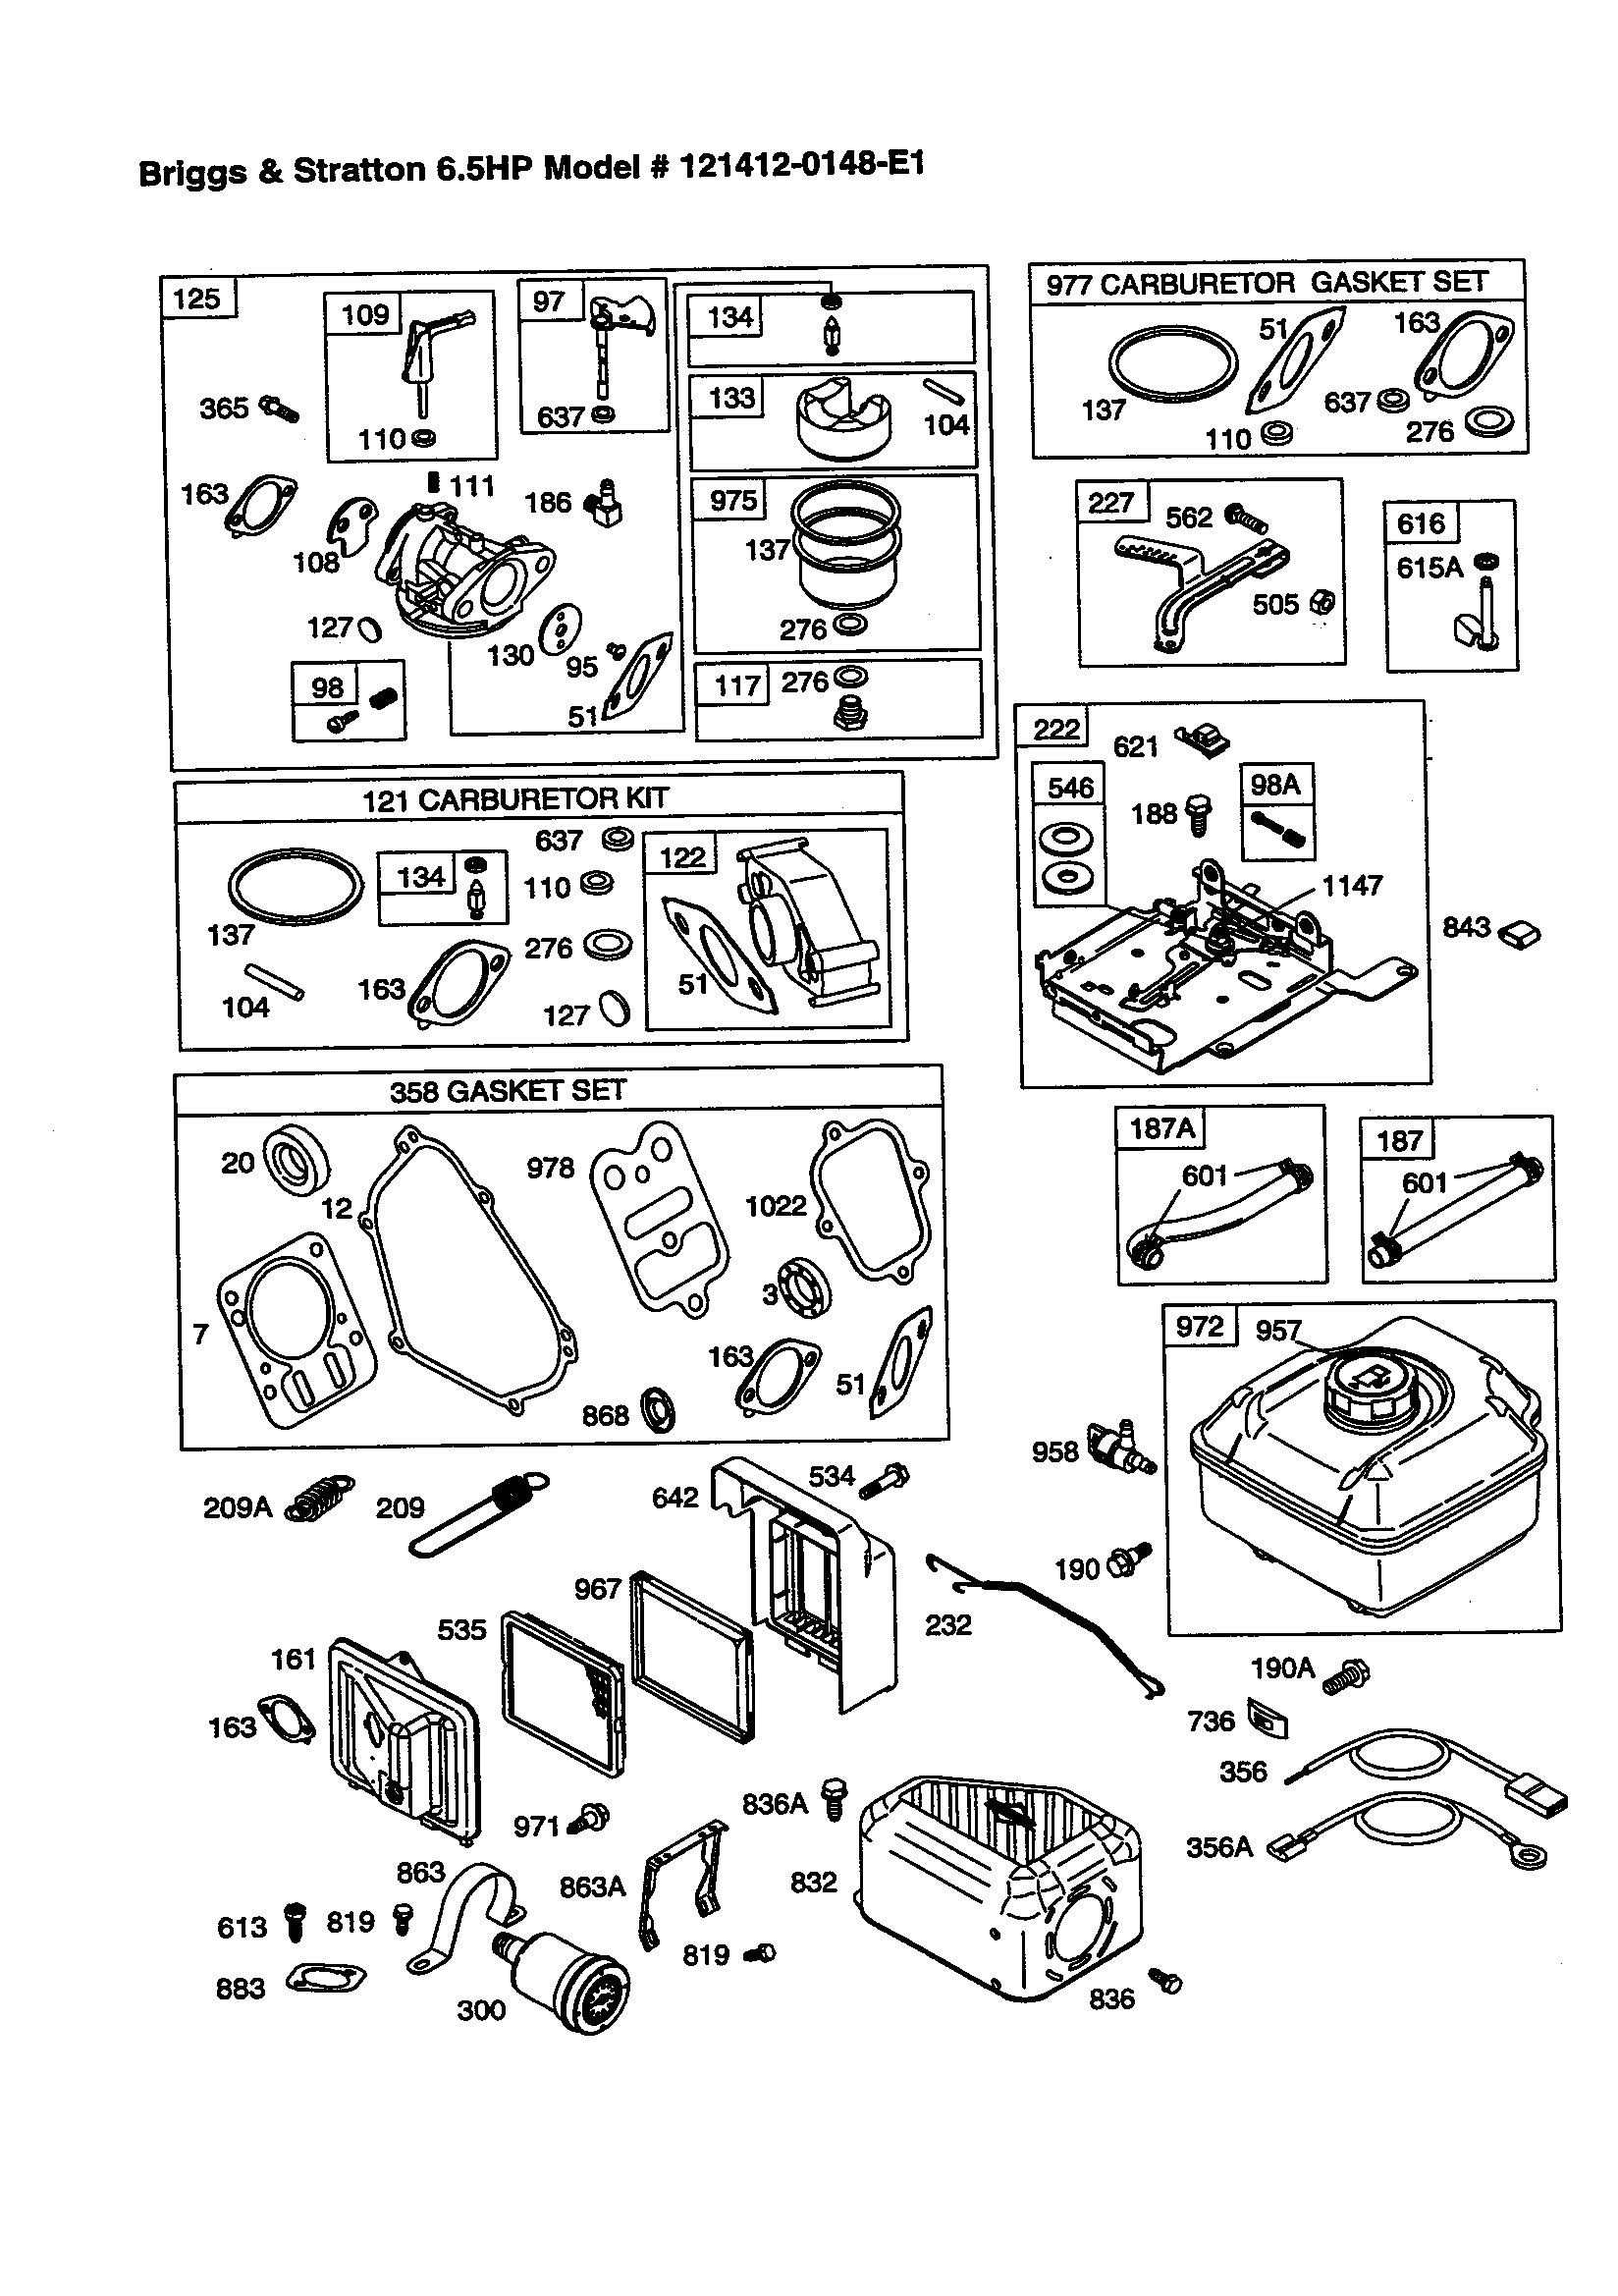 Briggs and Stratton Lawn Mower Engine Diagram Briggs Stratton Engine Diagram 2 Briggs Stratton Parts Diagram Fancy Of Briggs and Stratton Lawn Mower Engine Diagram